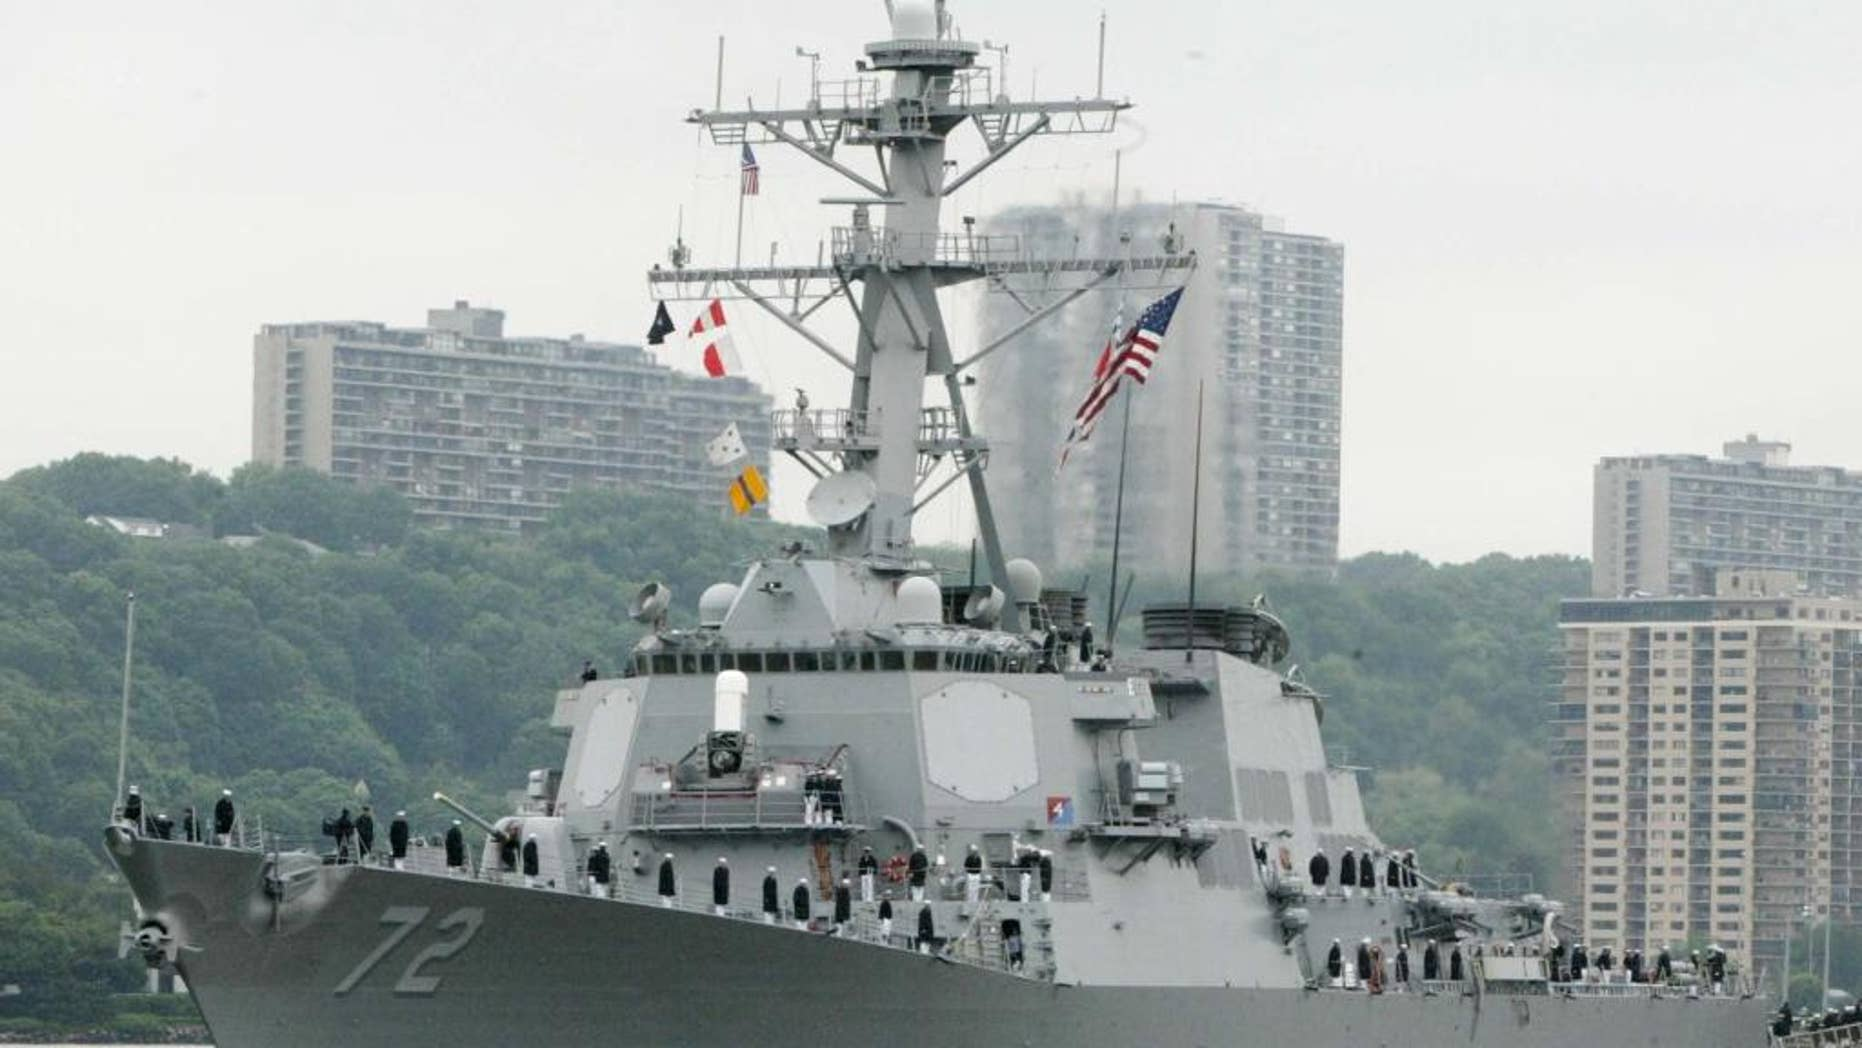 FILE - In this May 26, 2004 file photo, the USS Mahan, a guided-missile destroyer, moves up the Hudson River in New York during Fleet Week. A U.S. Navy guided-missile destroyer fired a warning flare toward an Iranian Revolutionary Guard vessel coming near it in the Persian Gulf, an American official said Wednesday, the latest tense naval encounter between the two countries. (AP Photo/Ed Bailey, File)